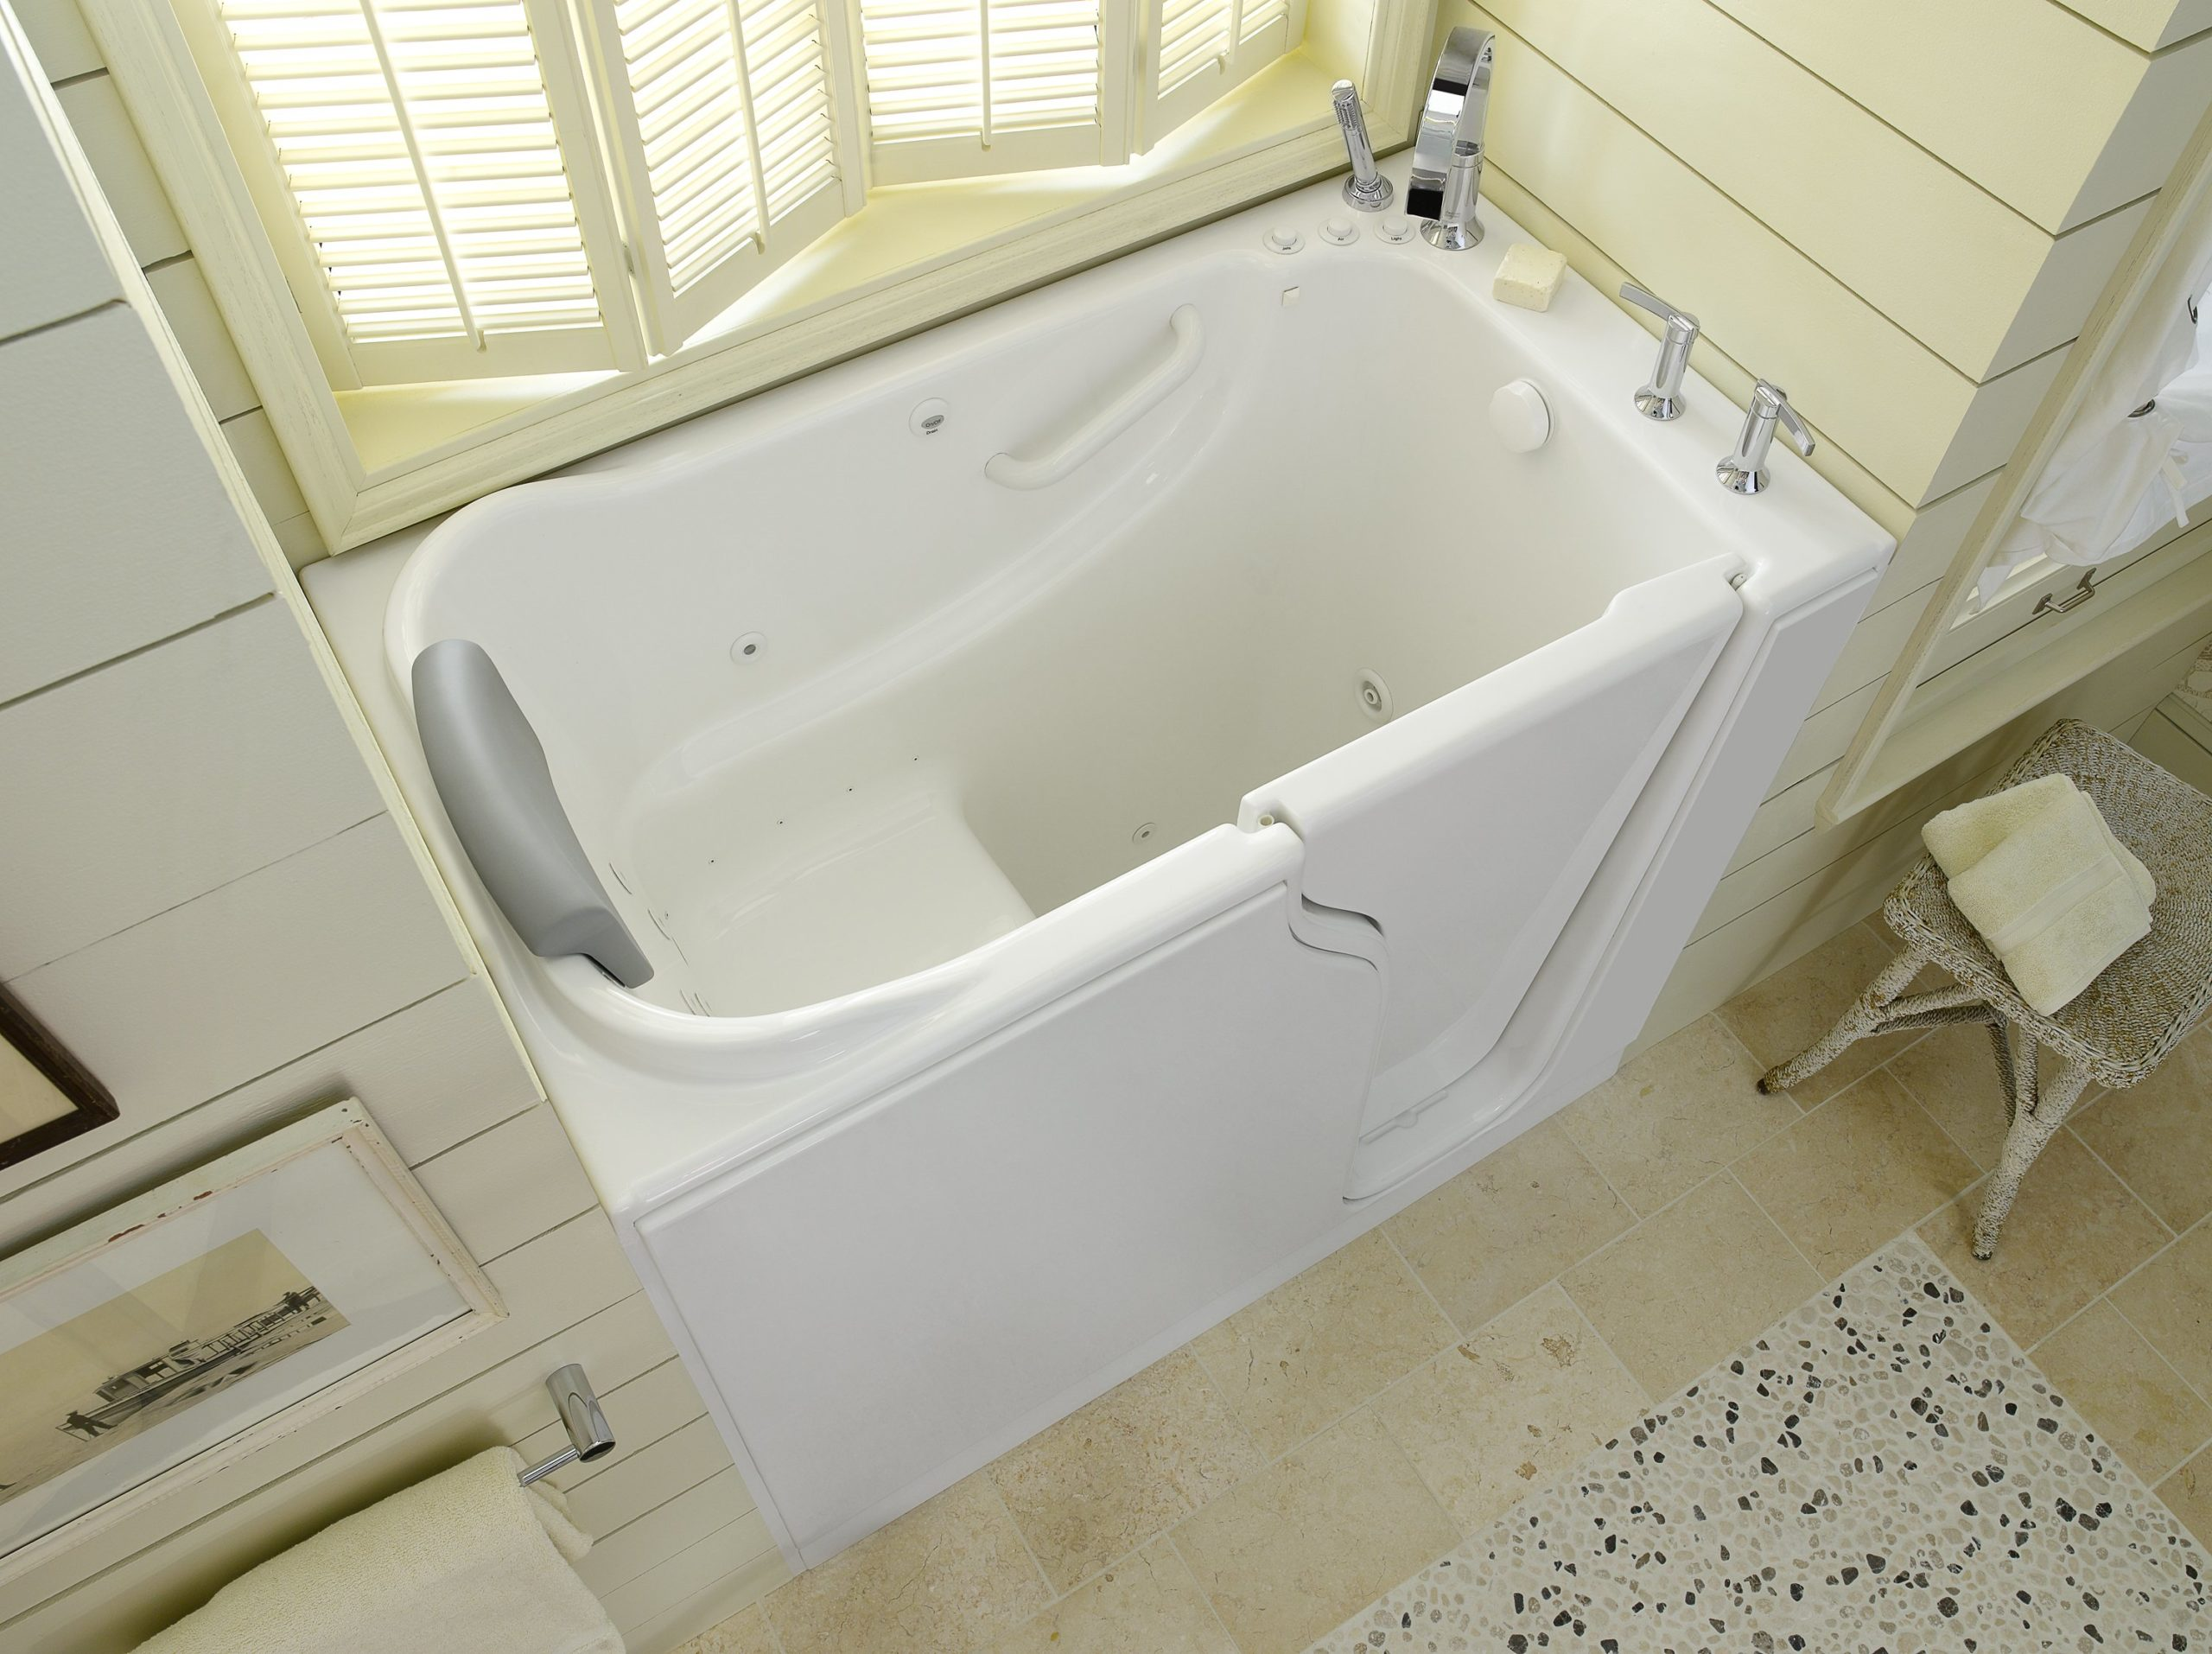 White_Walk In_Bathtub_30x52_Photo_1_amst_HR_bci